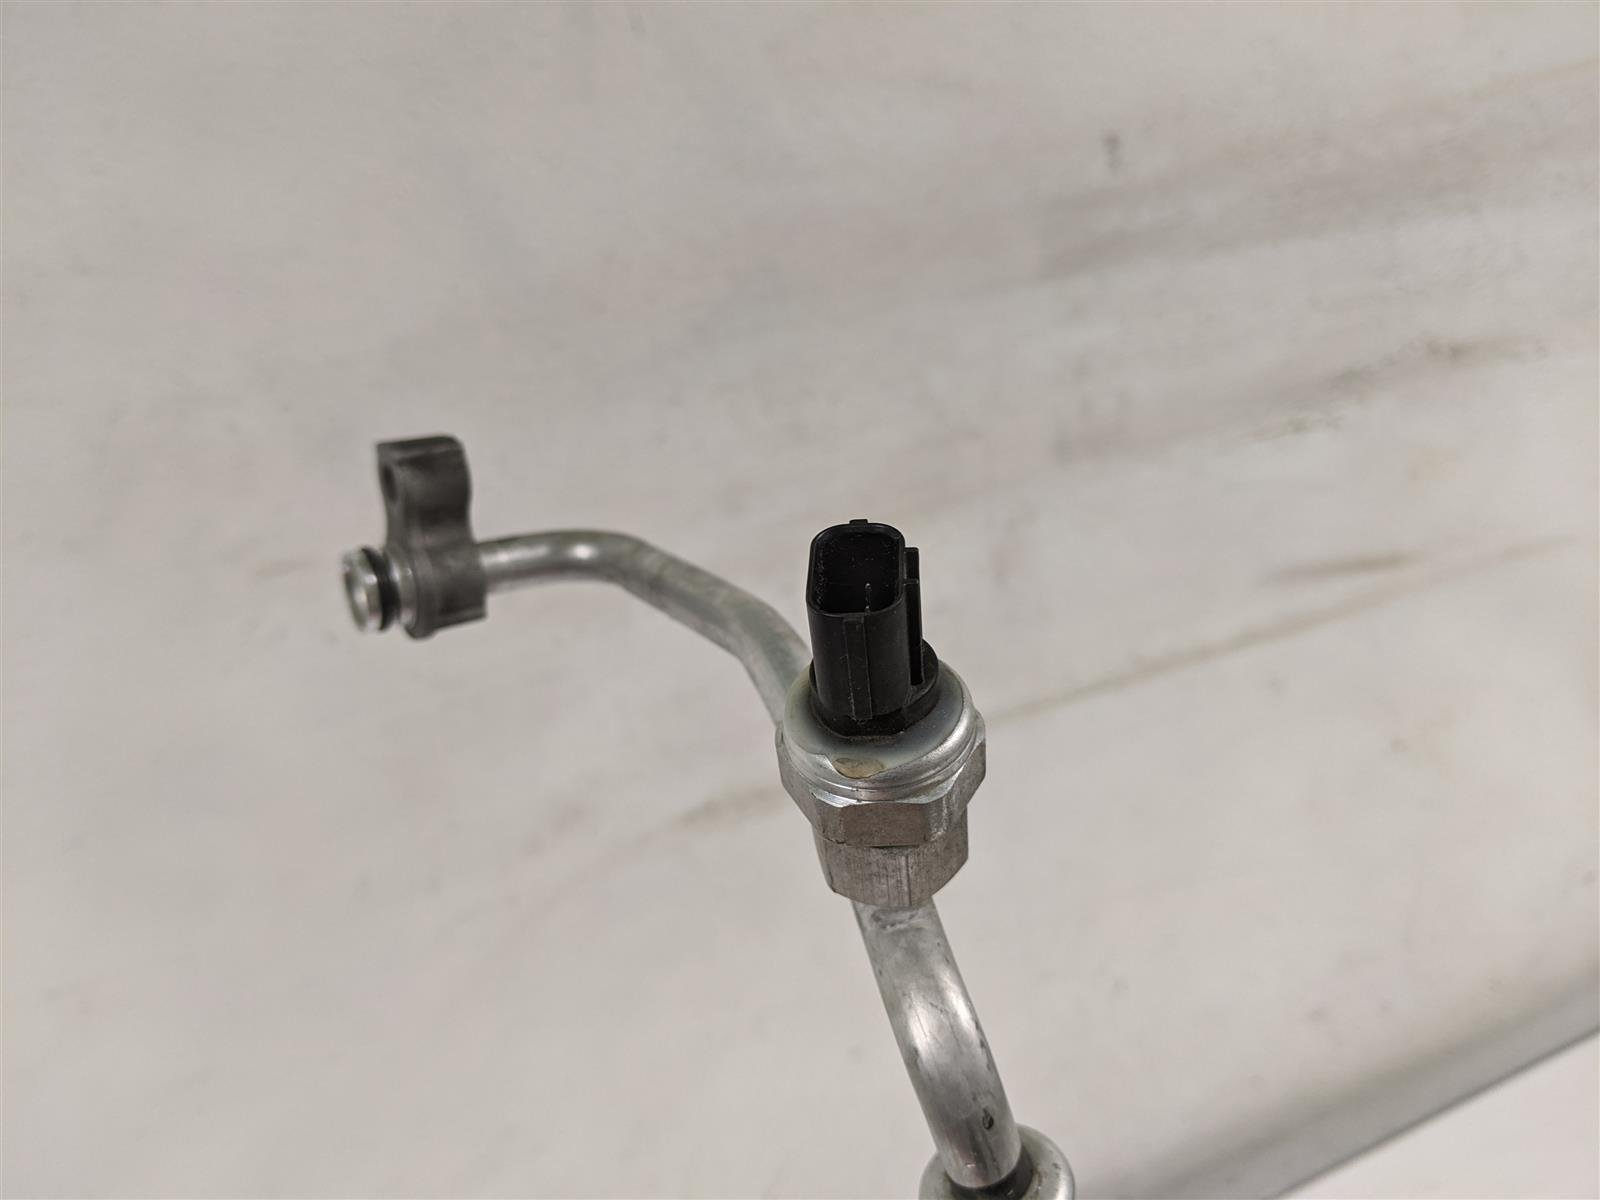 2018 Honda Accord Ac Discharge Hose Replacement